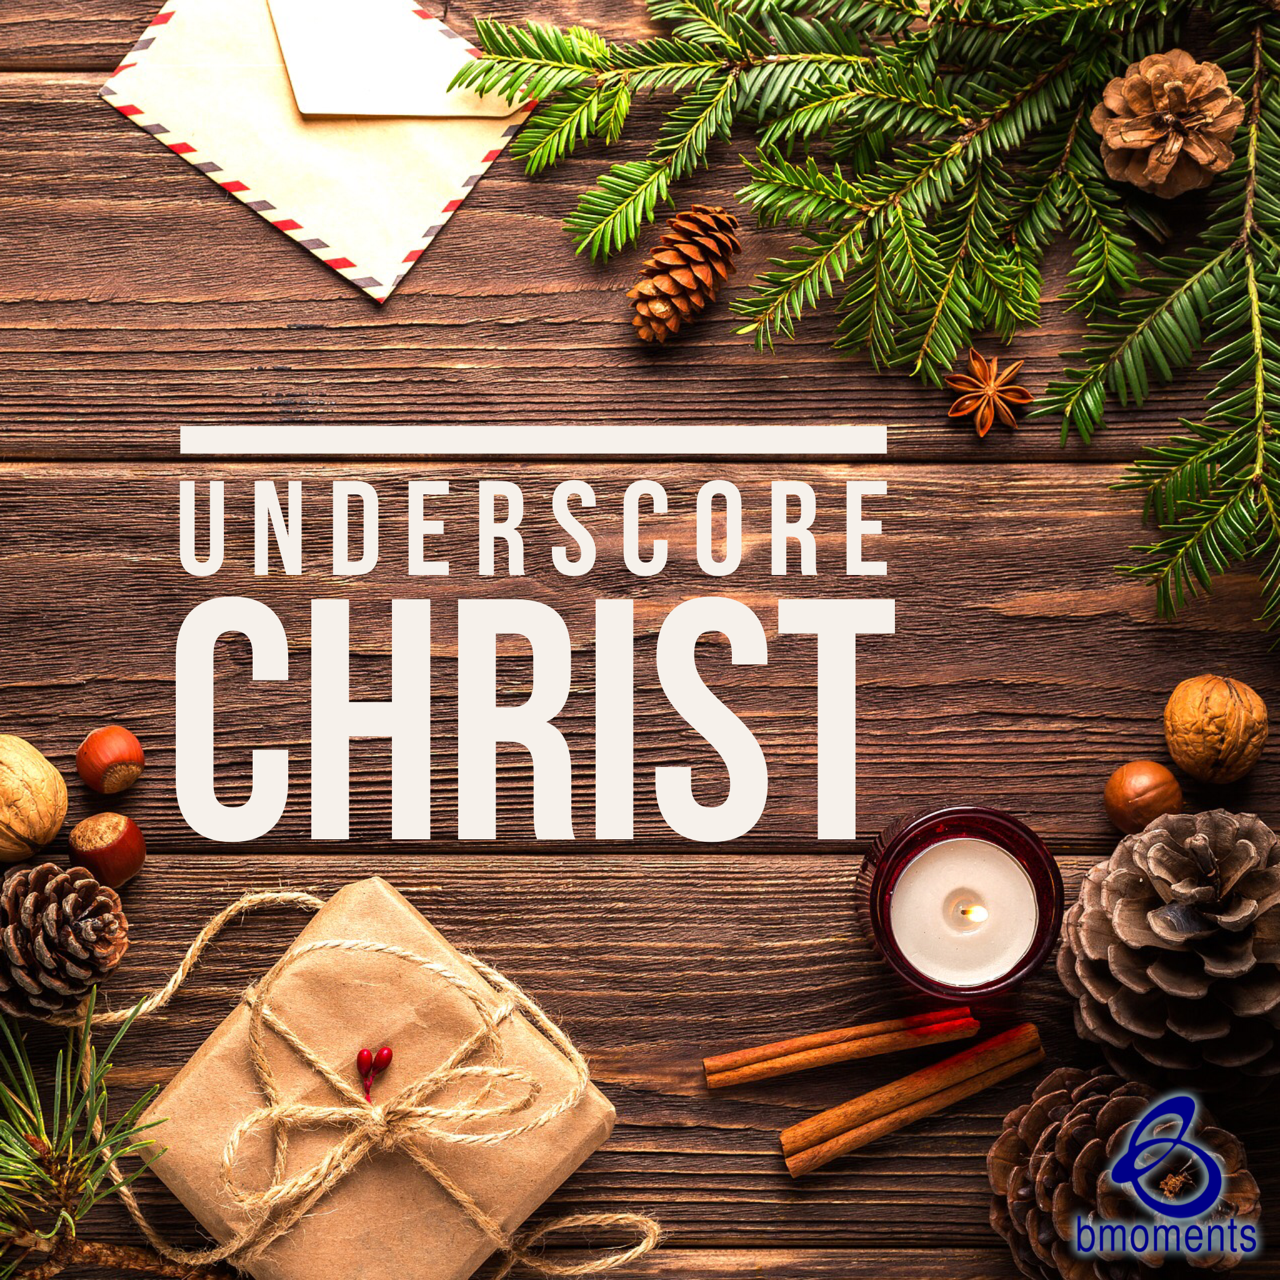 This Christmas, Be Sure to Underscore Christ